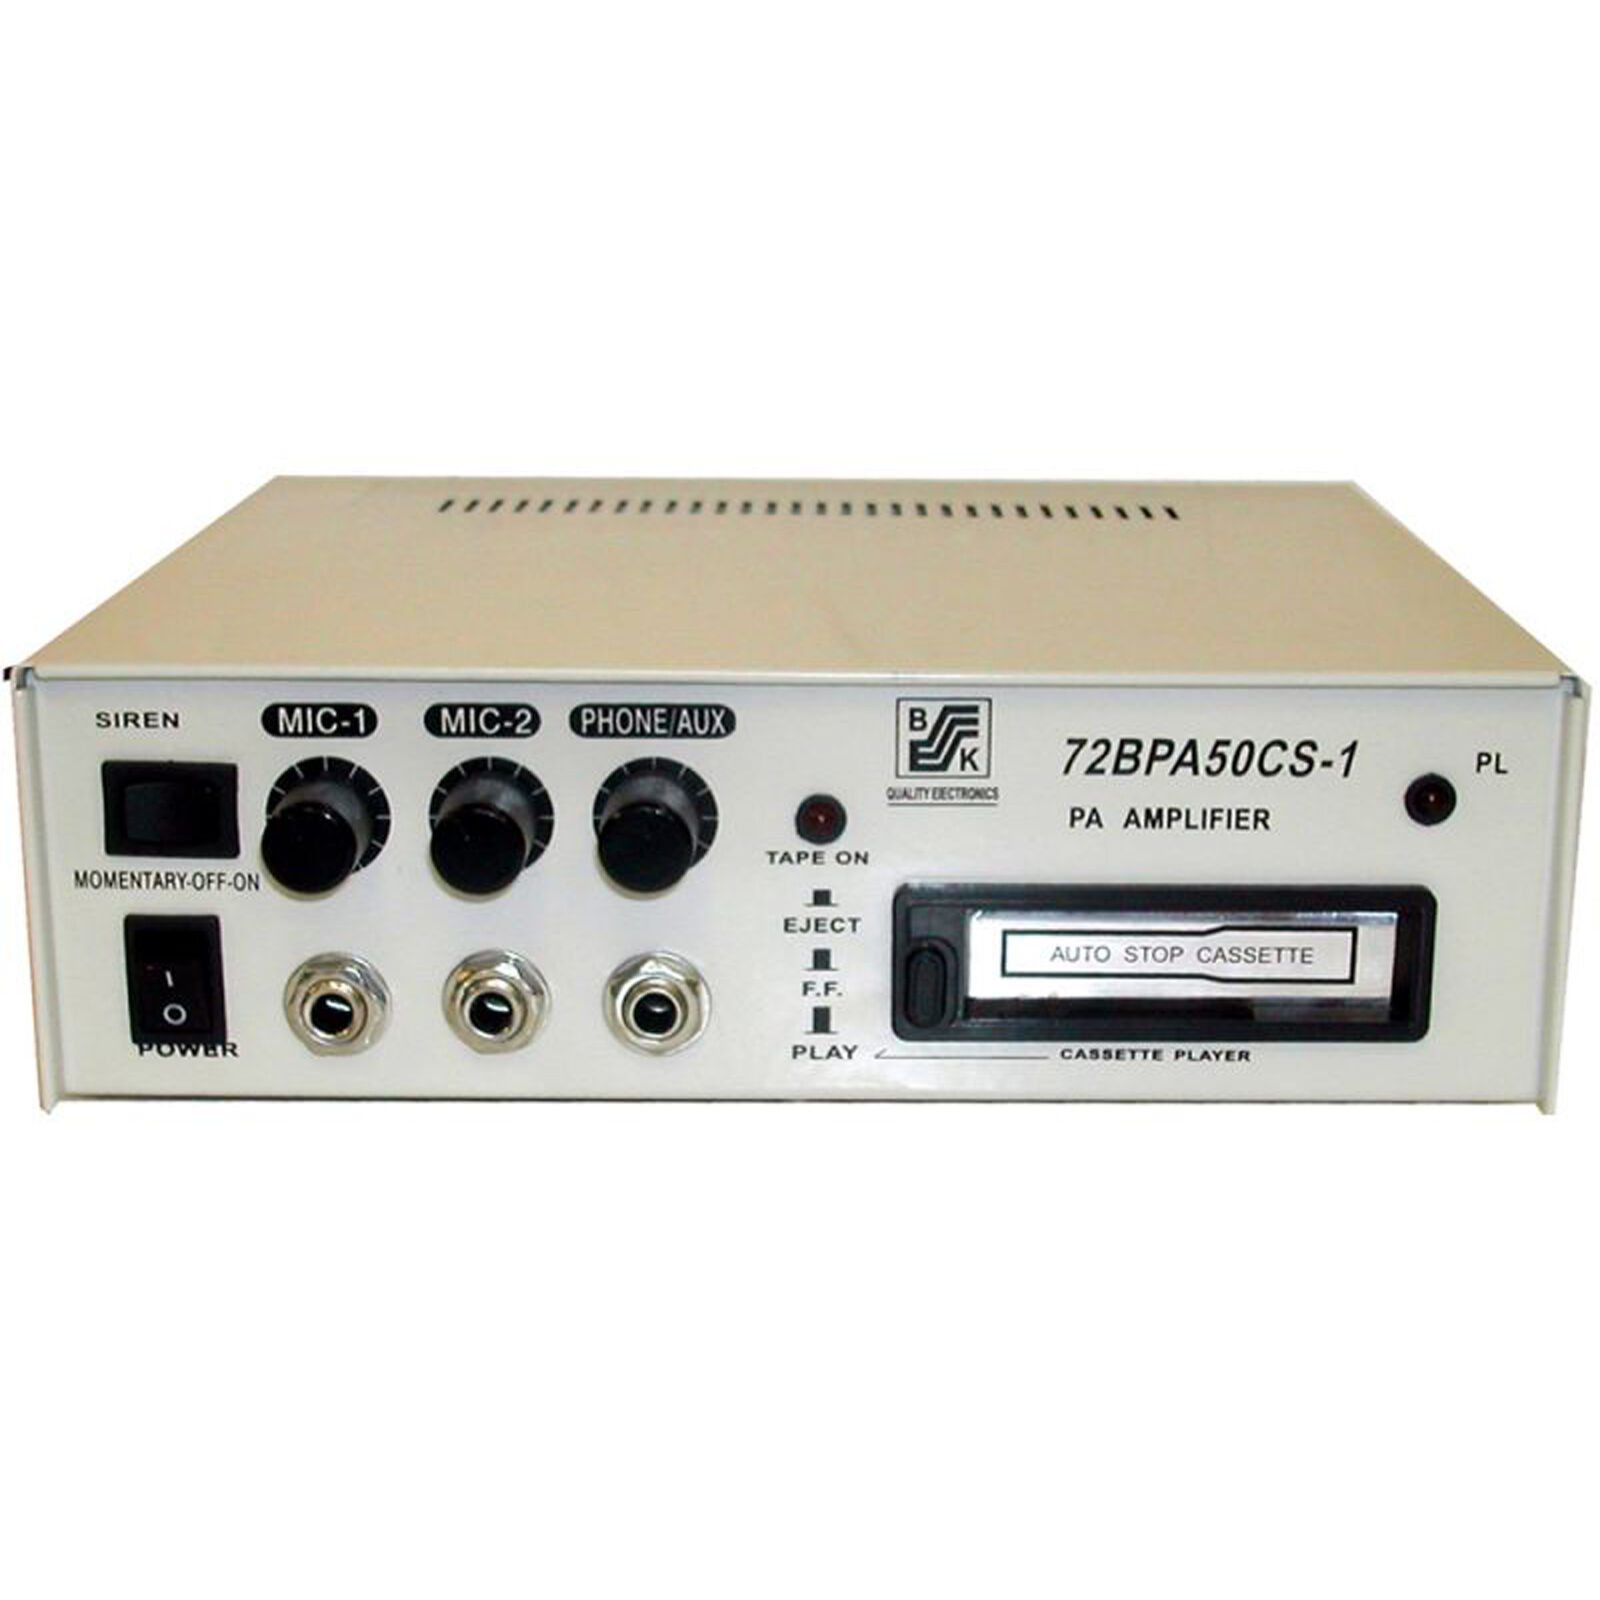 50 Watts Solid-State PA Power Amplifier  12V DC 110 220 DC -72BPA50CS-1